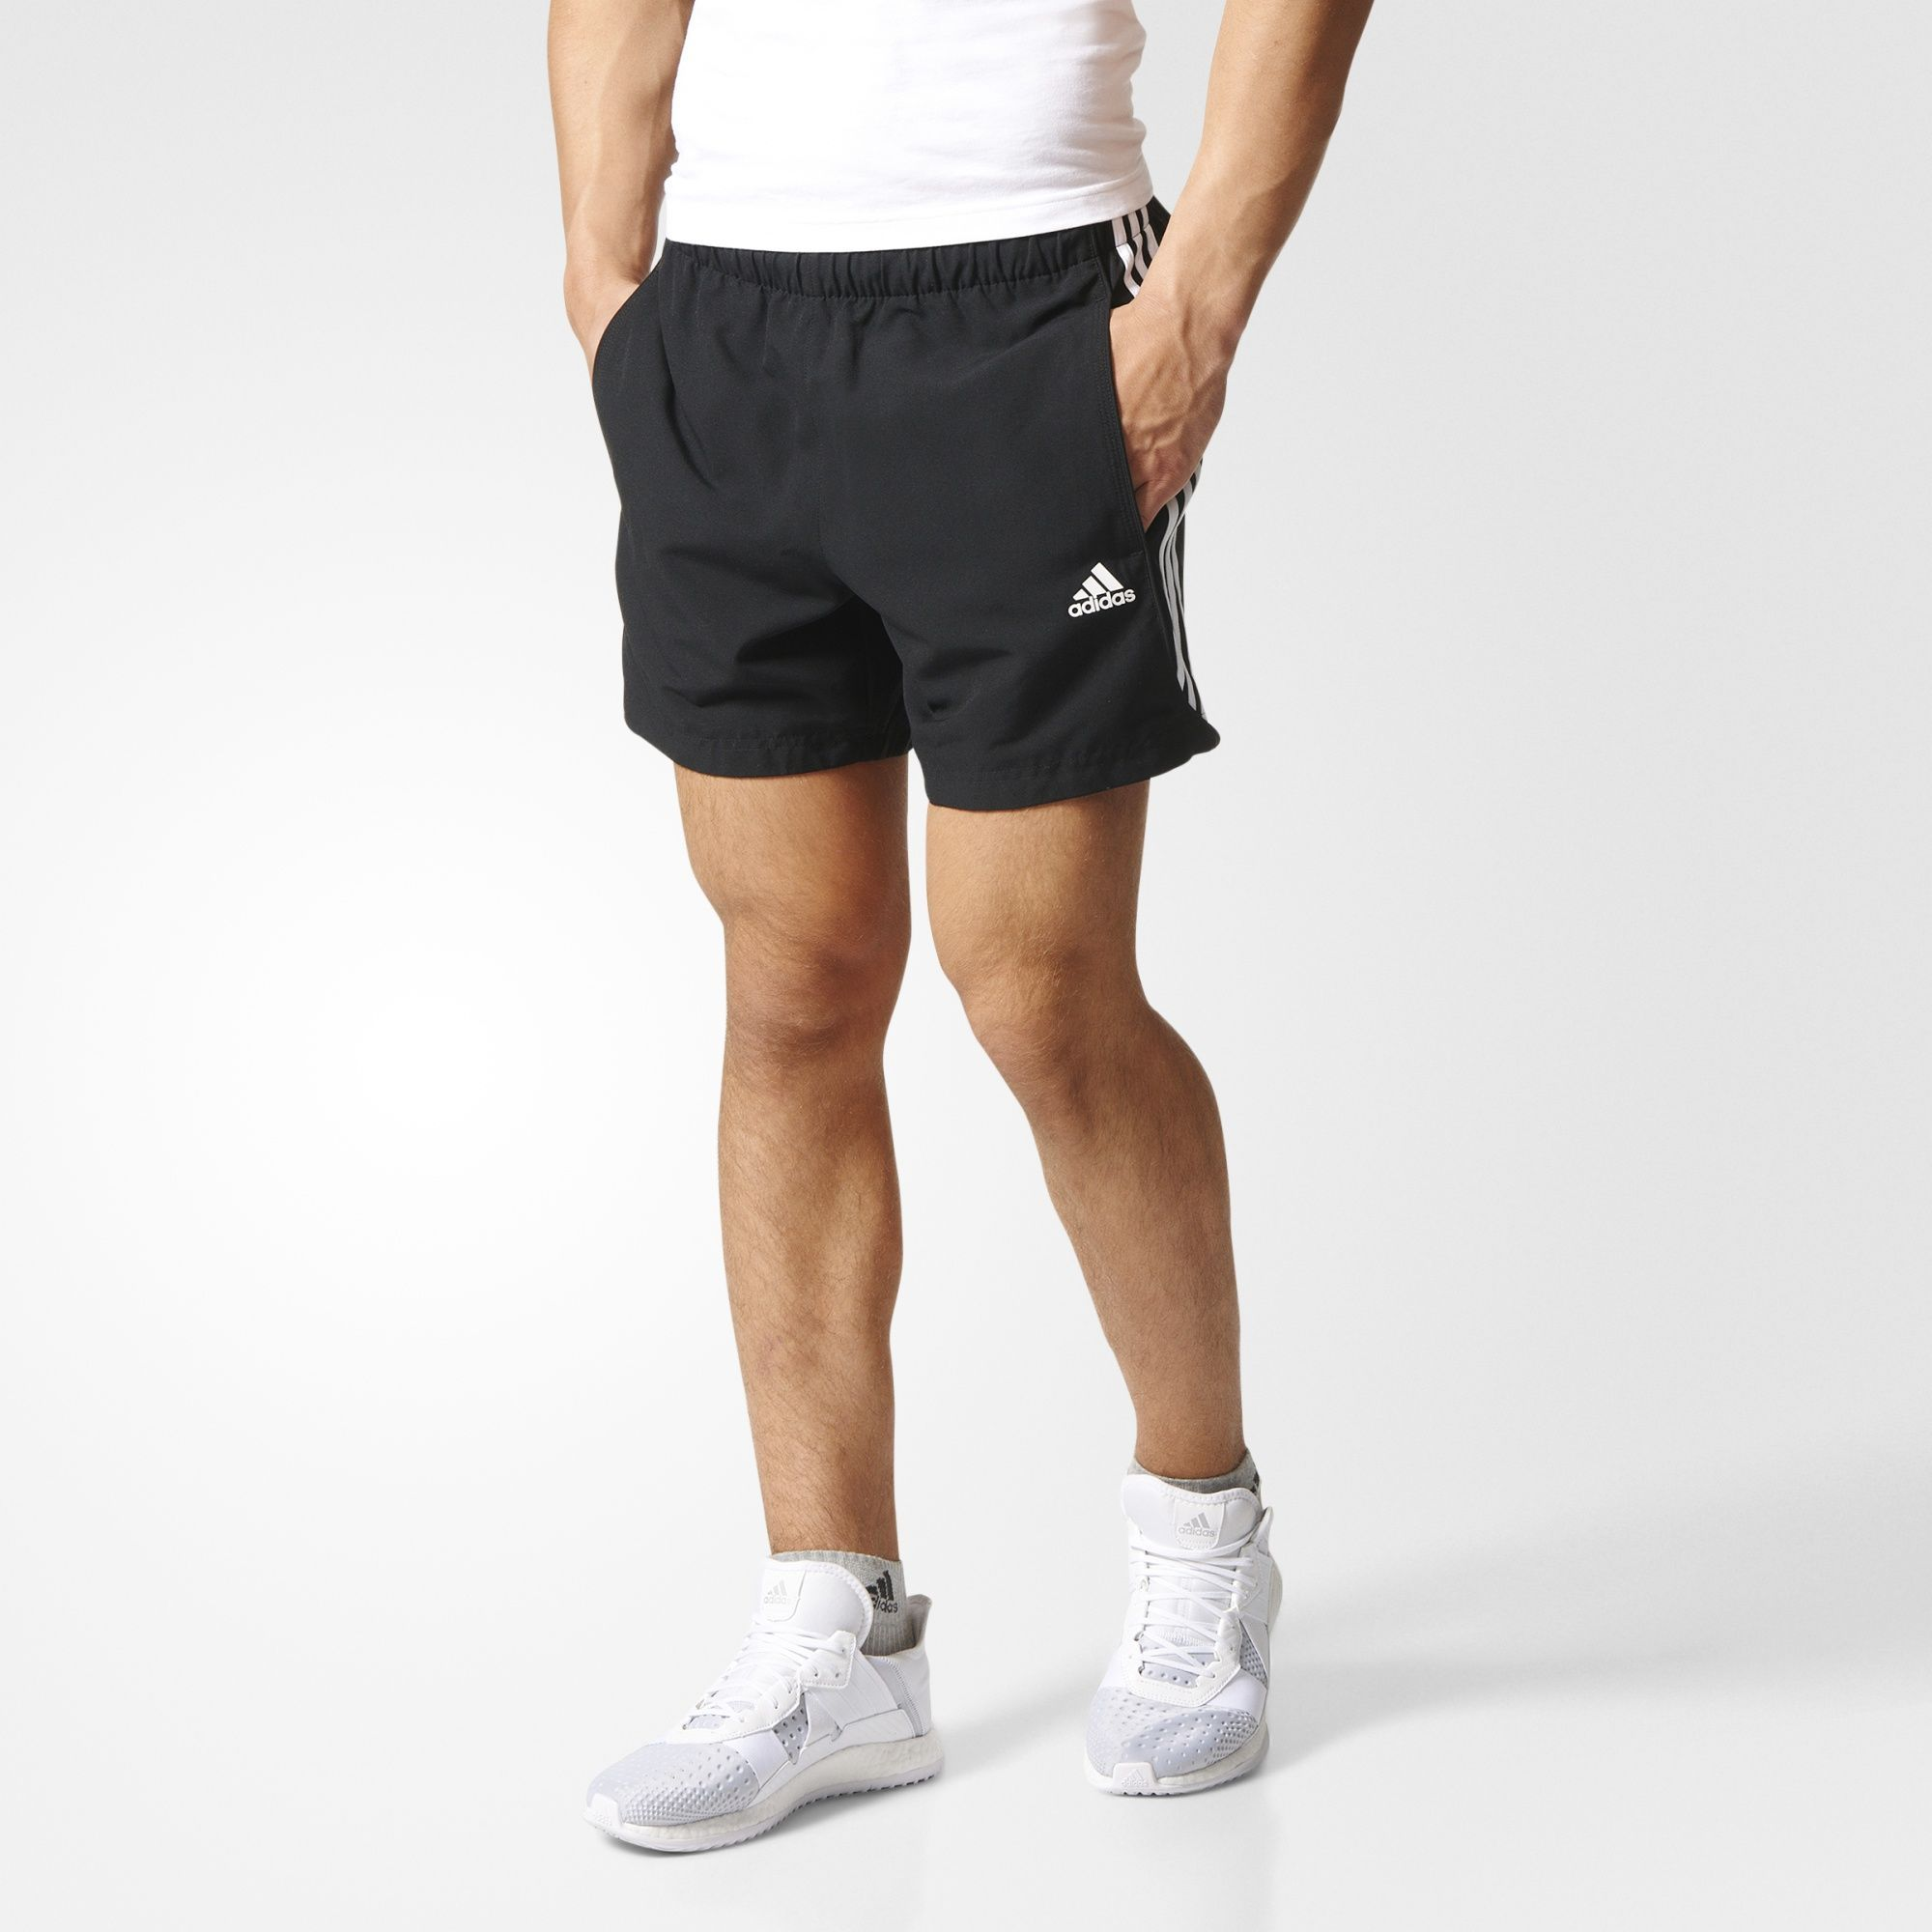 Stylish Adidas Essentials Shorts For Mens Online